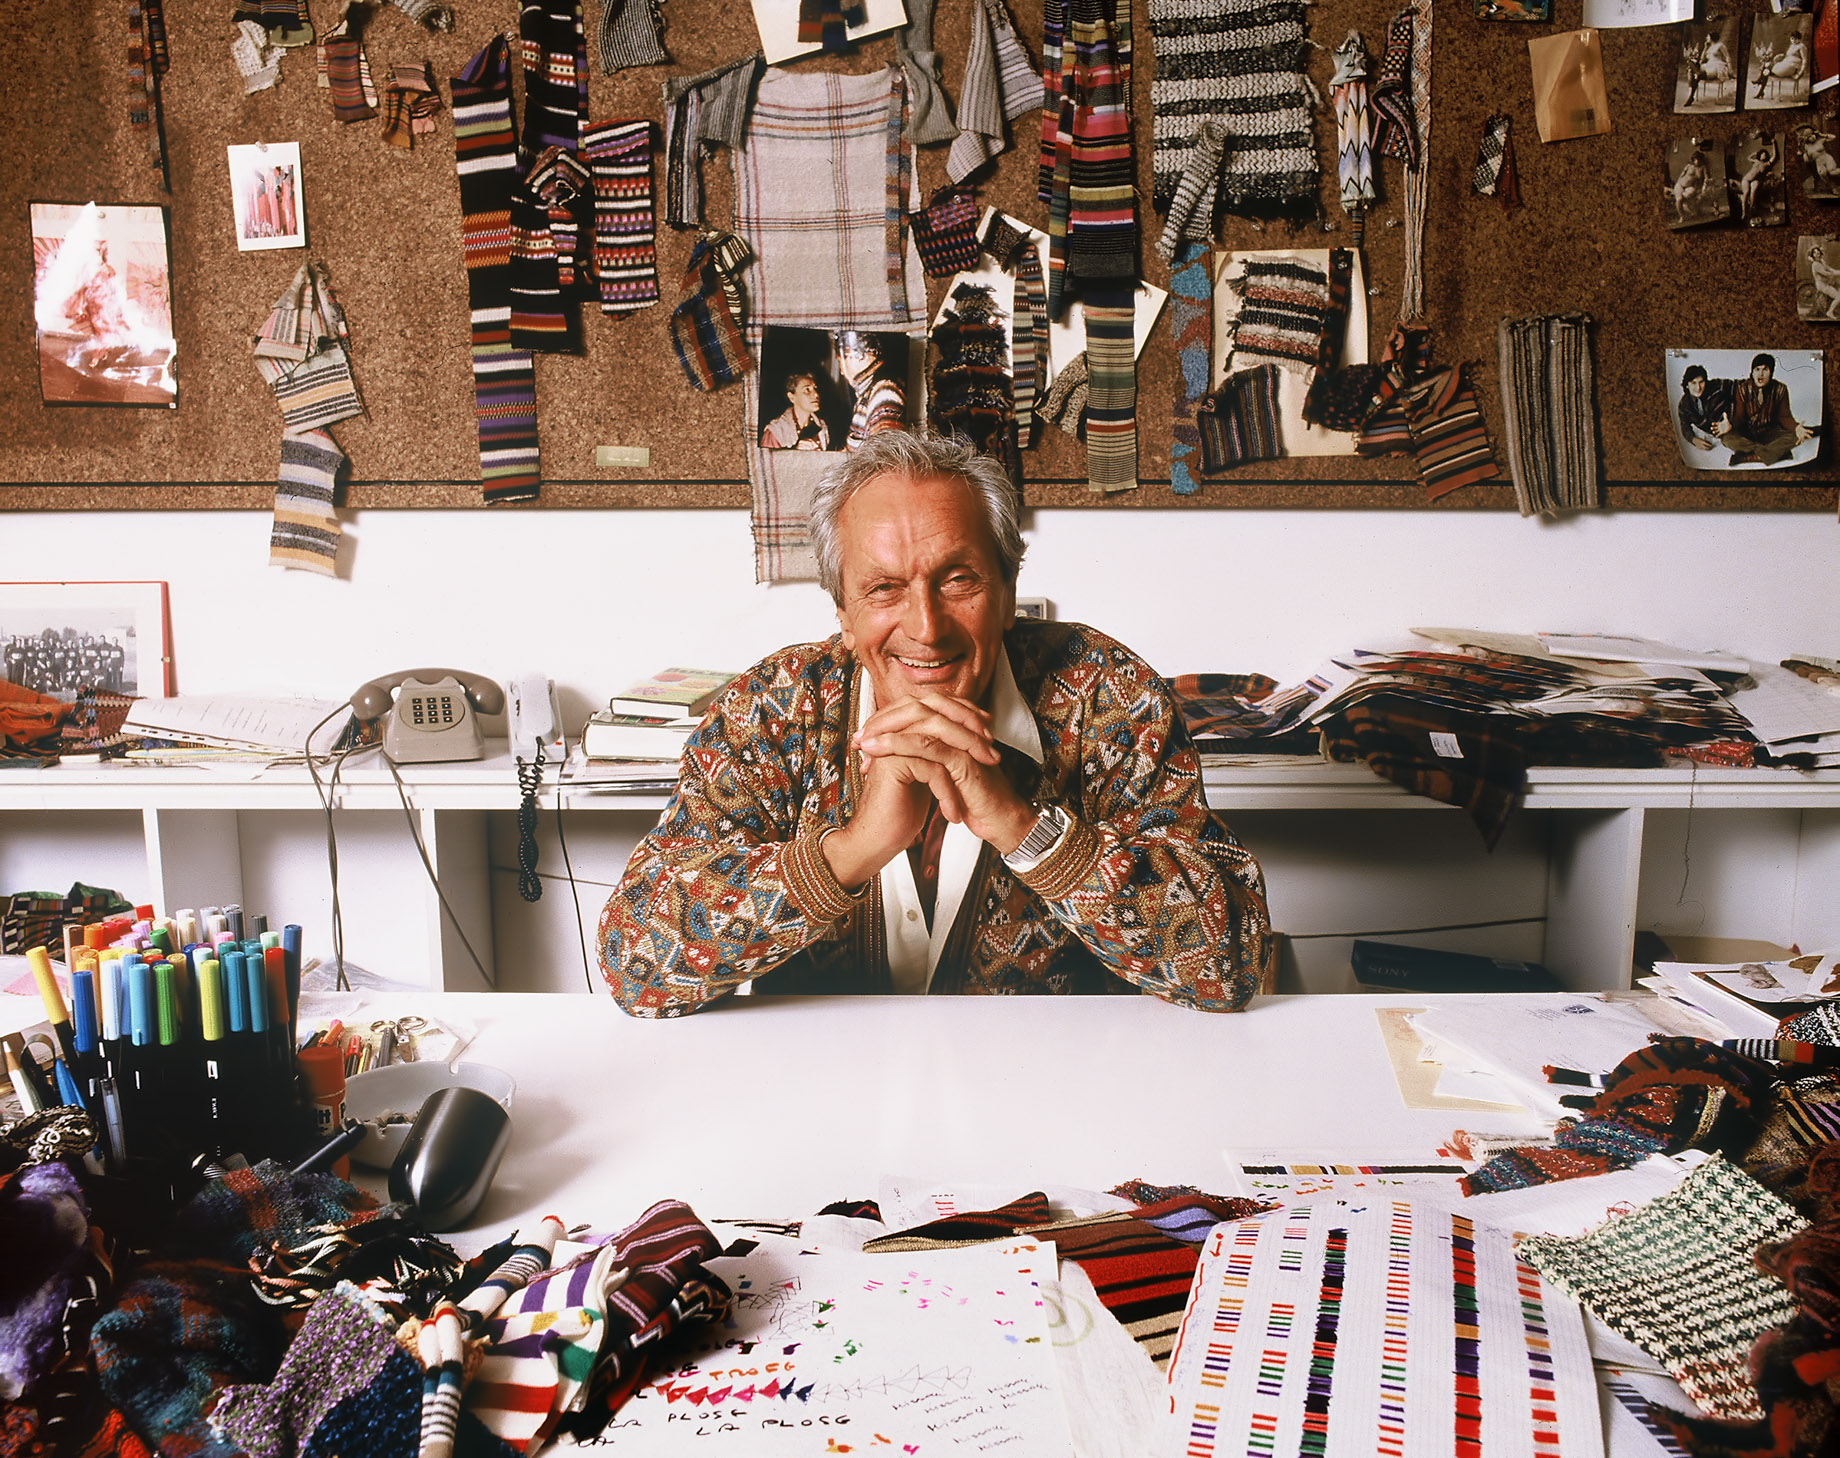 Ottavio Missoni Designing Tapestries and Rugs - Missoni Baia Miami Residences Heritage